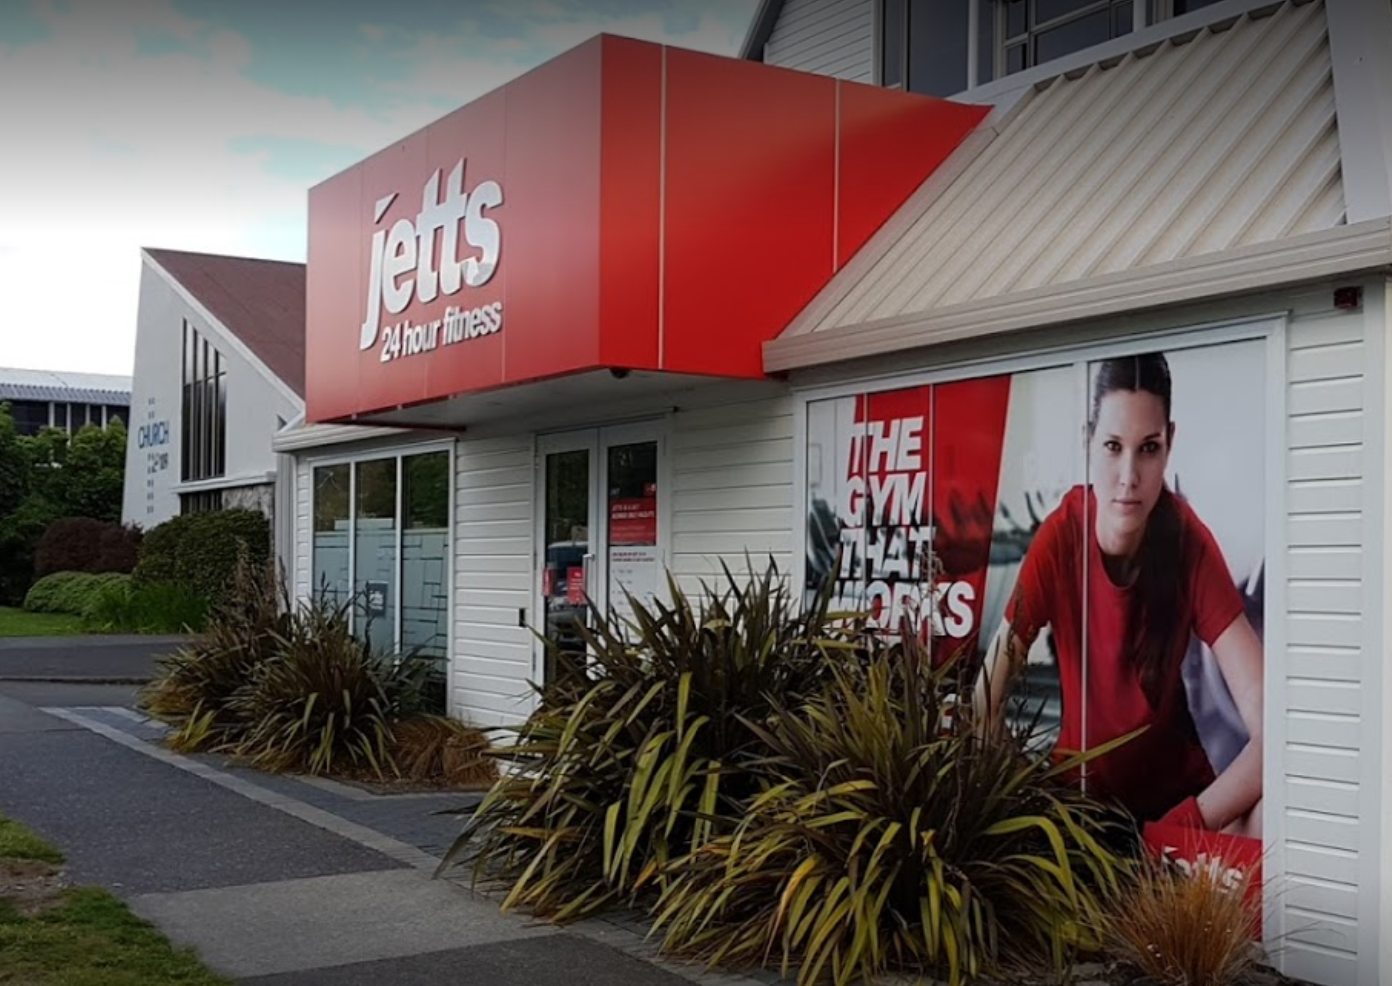 Jetts Fitness, Lake Taupo